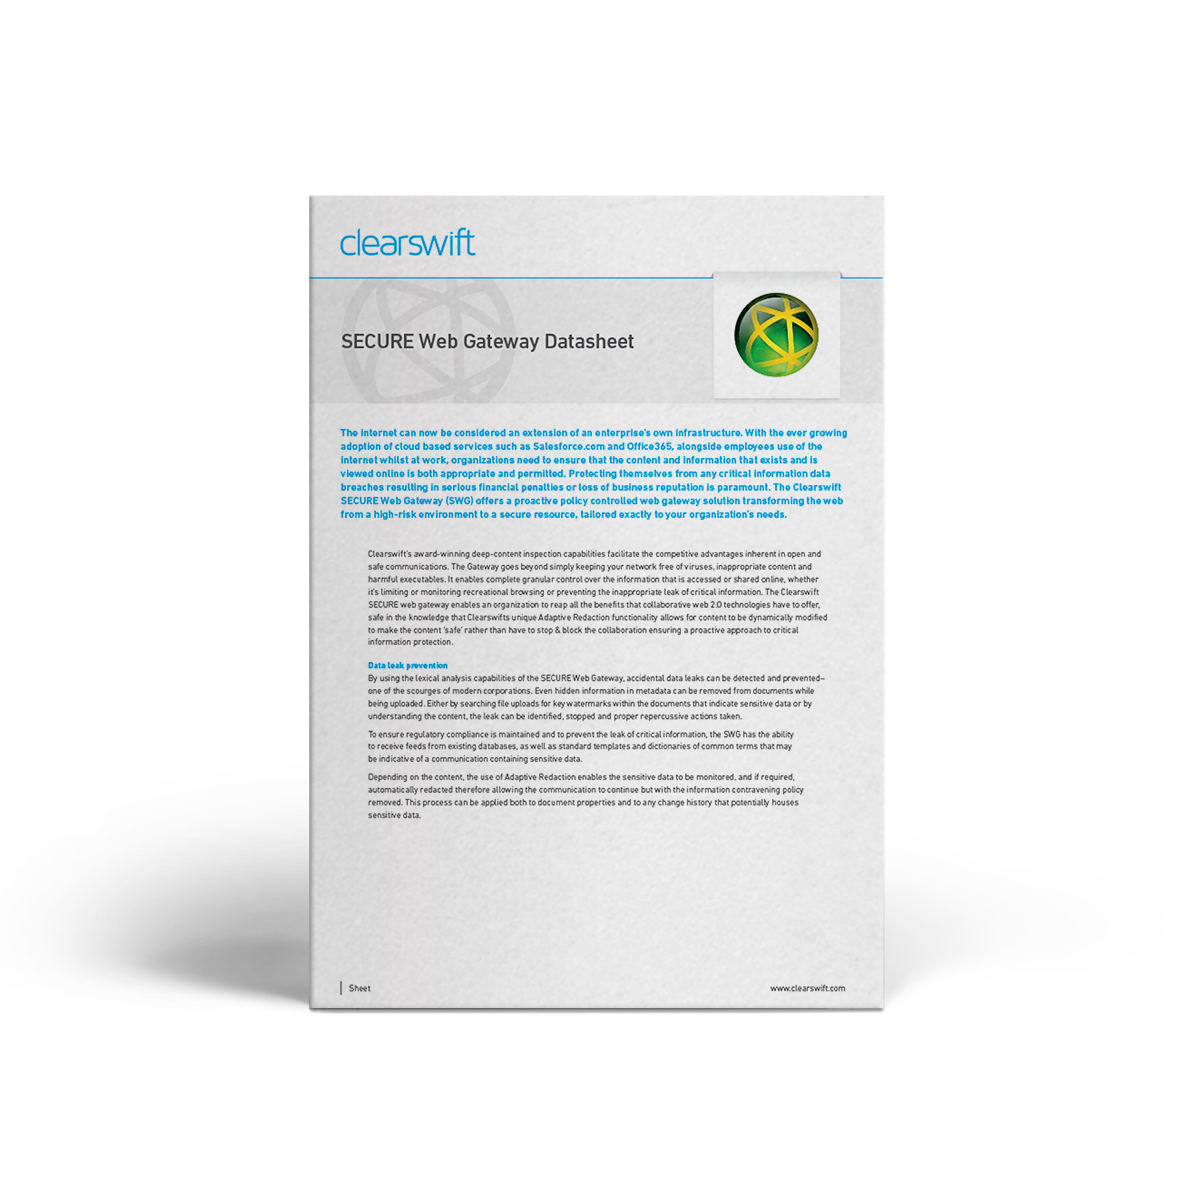 Clearswift SWG datasheet